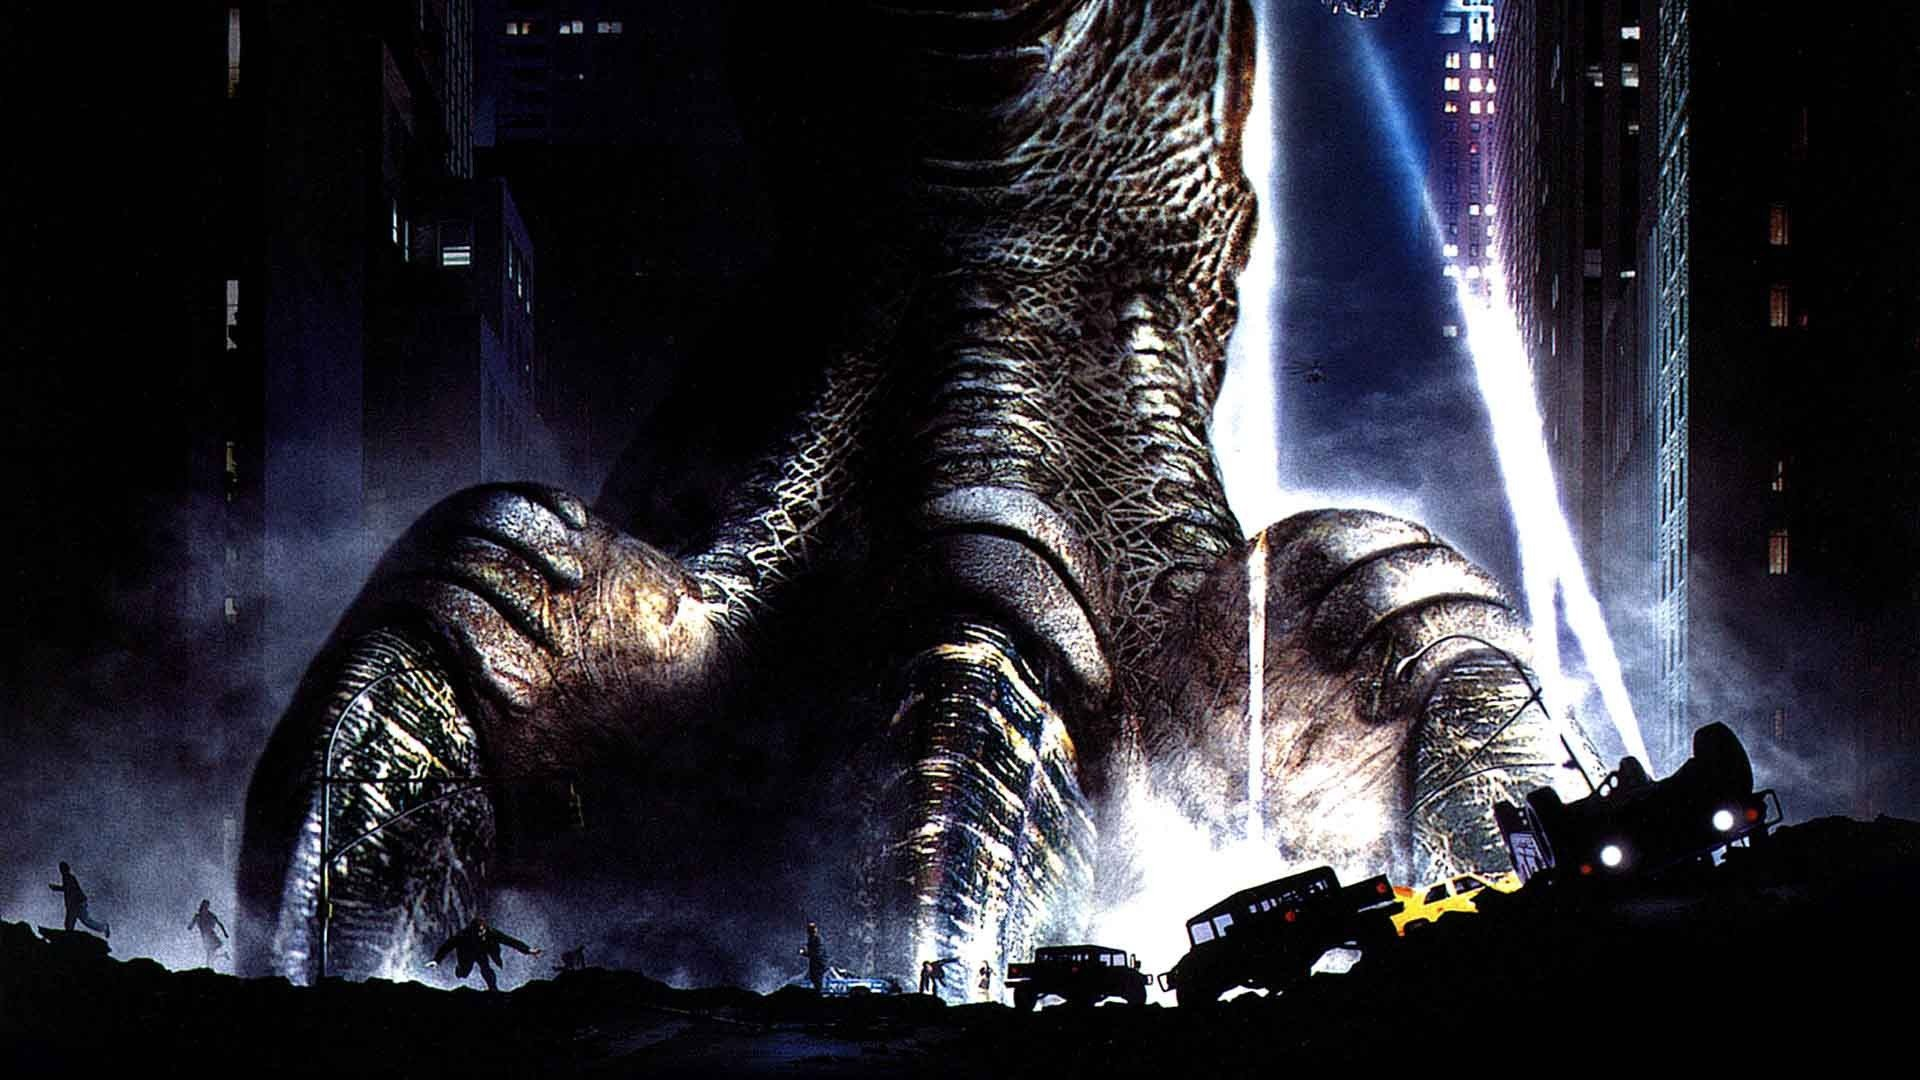 Godzilla 2014 Movie Poster 16509 Wallpaper Wallpaper hd 1920x1080